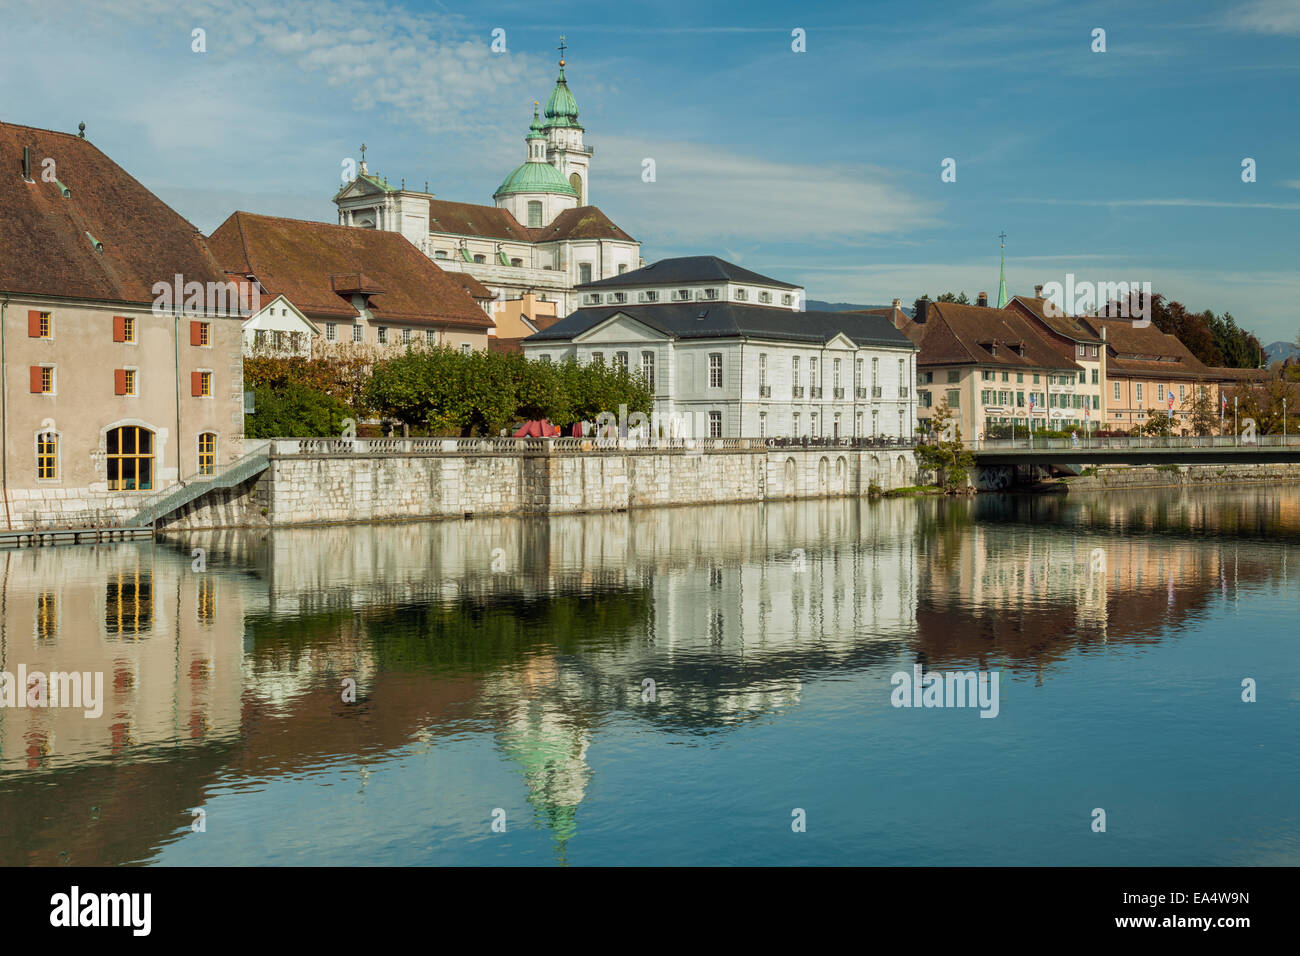 Solothurn old town on Aare river, Switzerland. - Stock Image